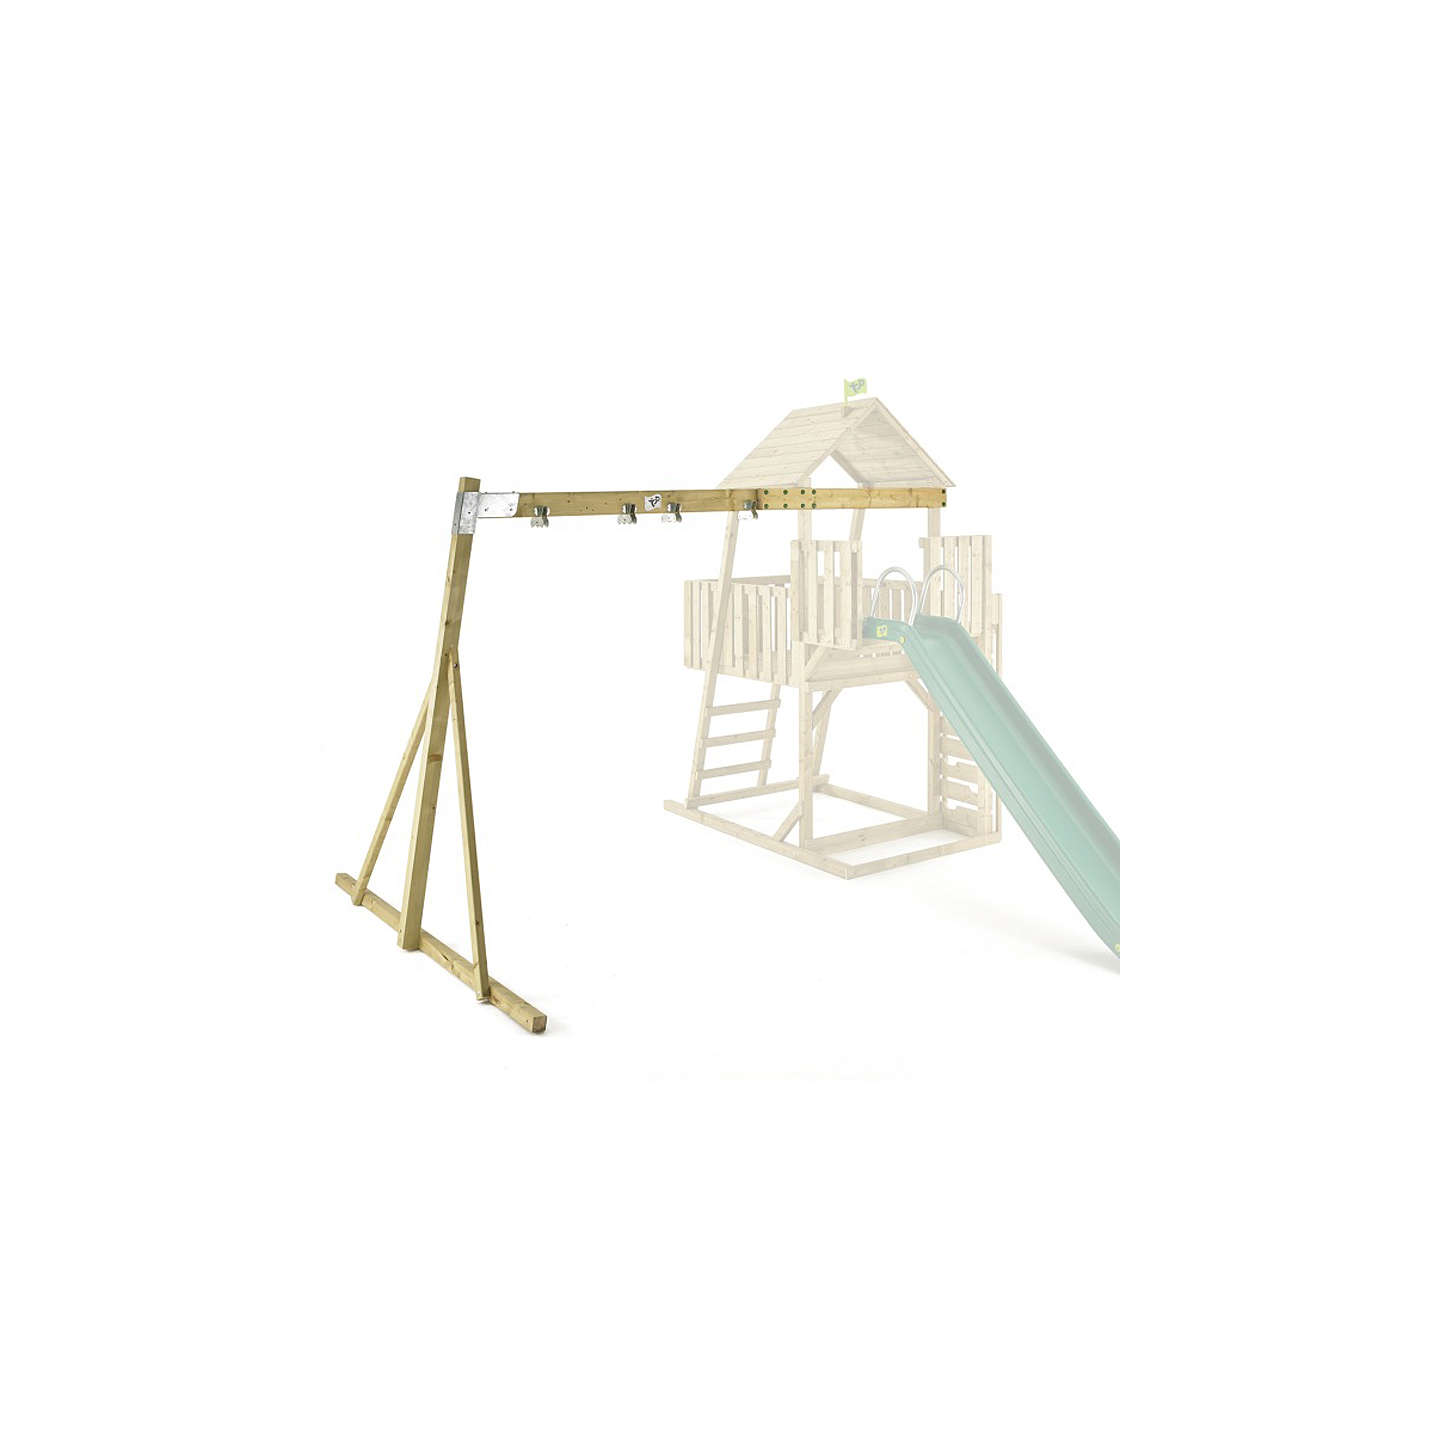 BuyTP Toys TP479P Kingswood2 Swing Arm Set Online at johnlewis.com